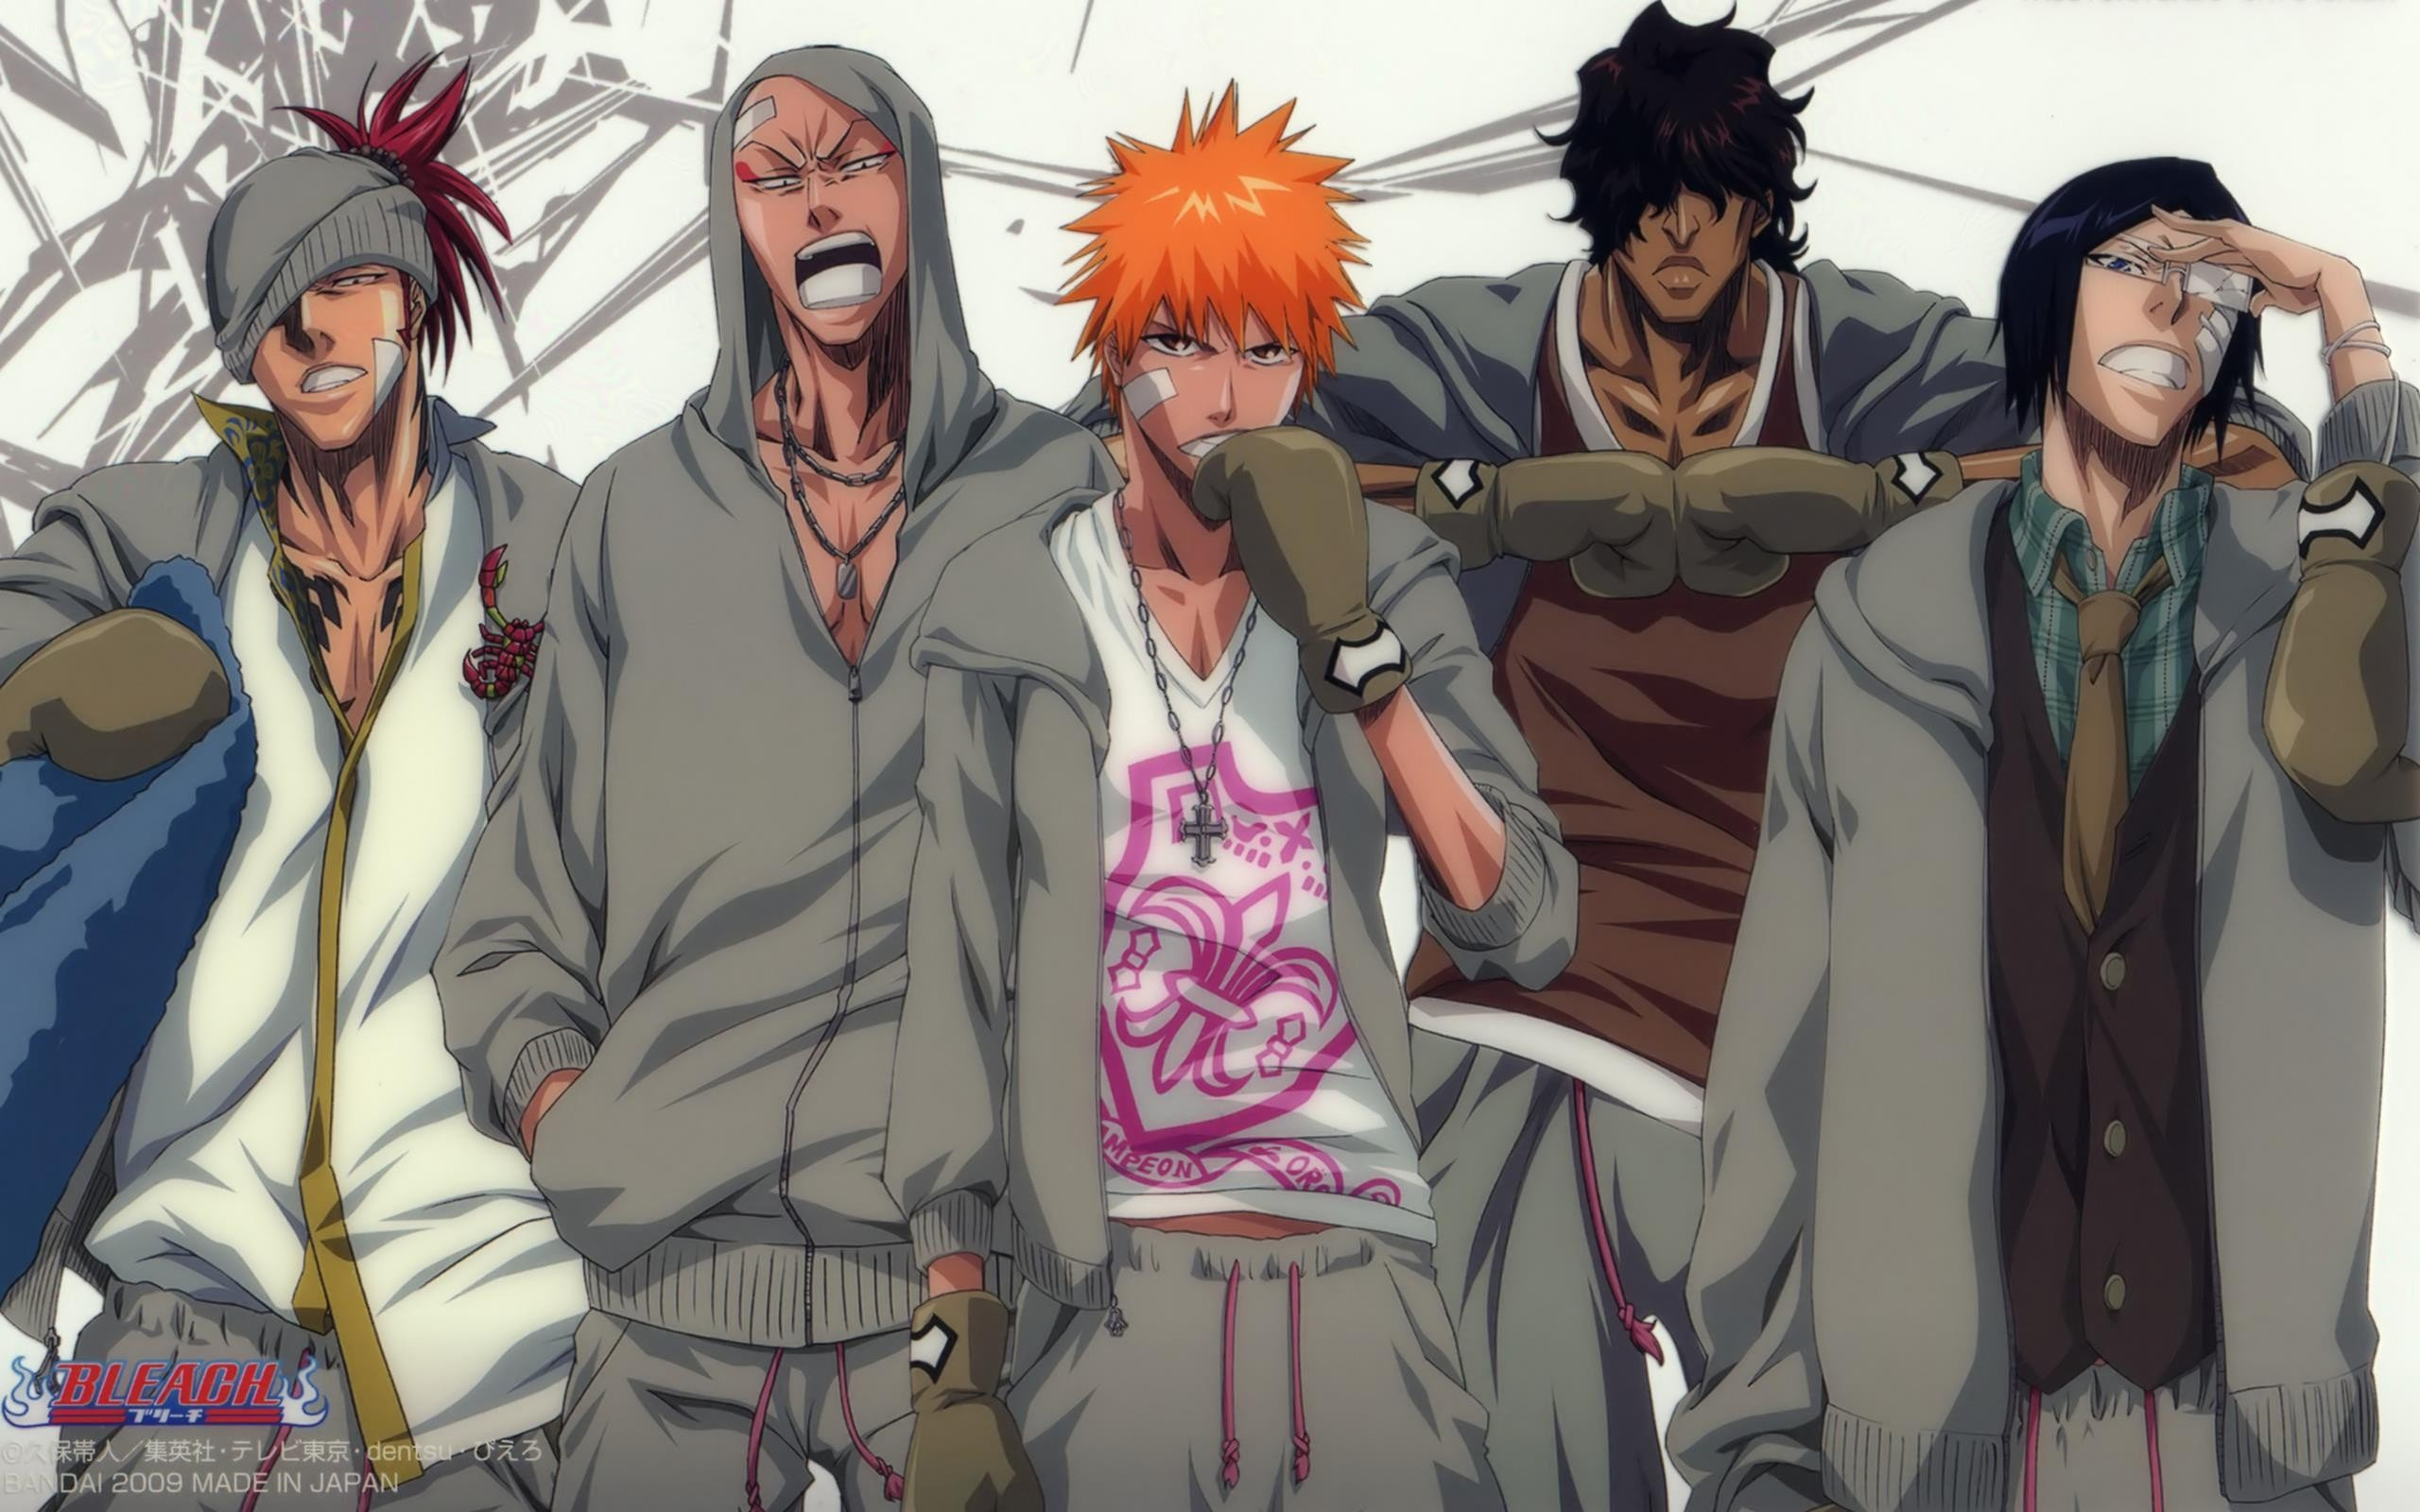 Anime series character guys bleach group wallpaper - Anime character wallpaper ...